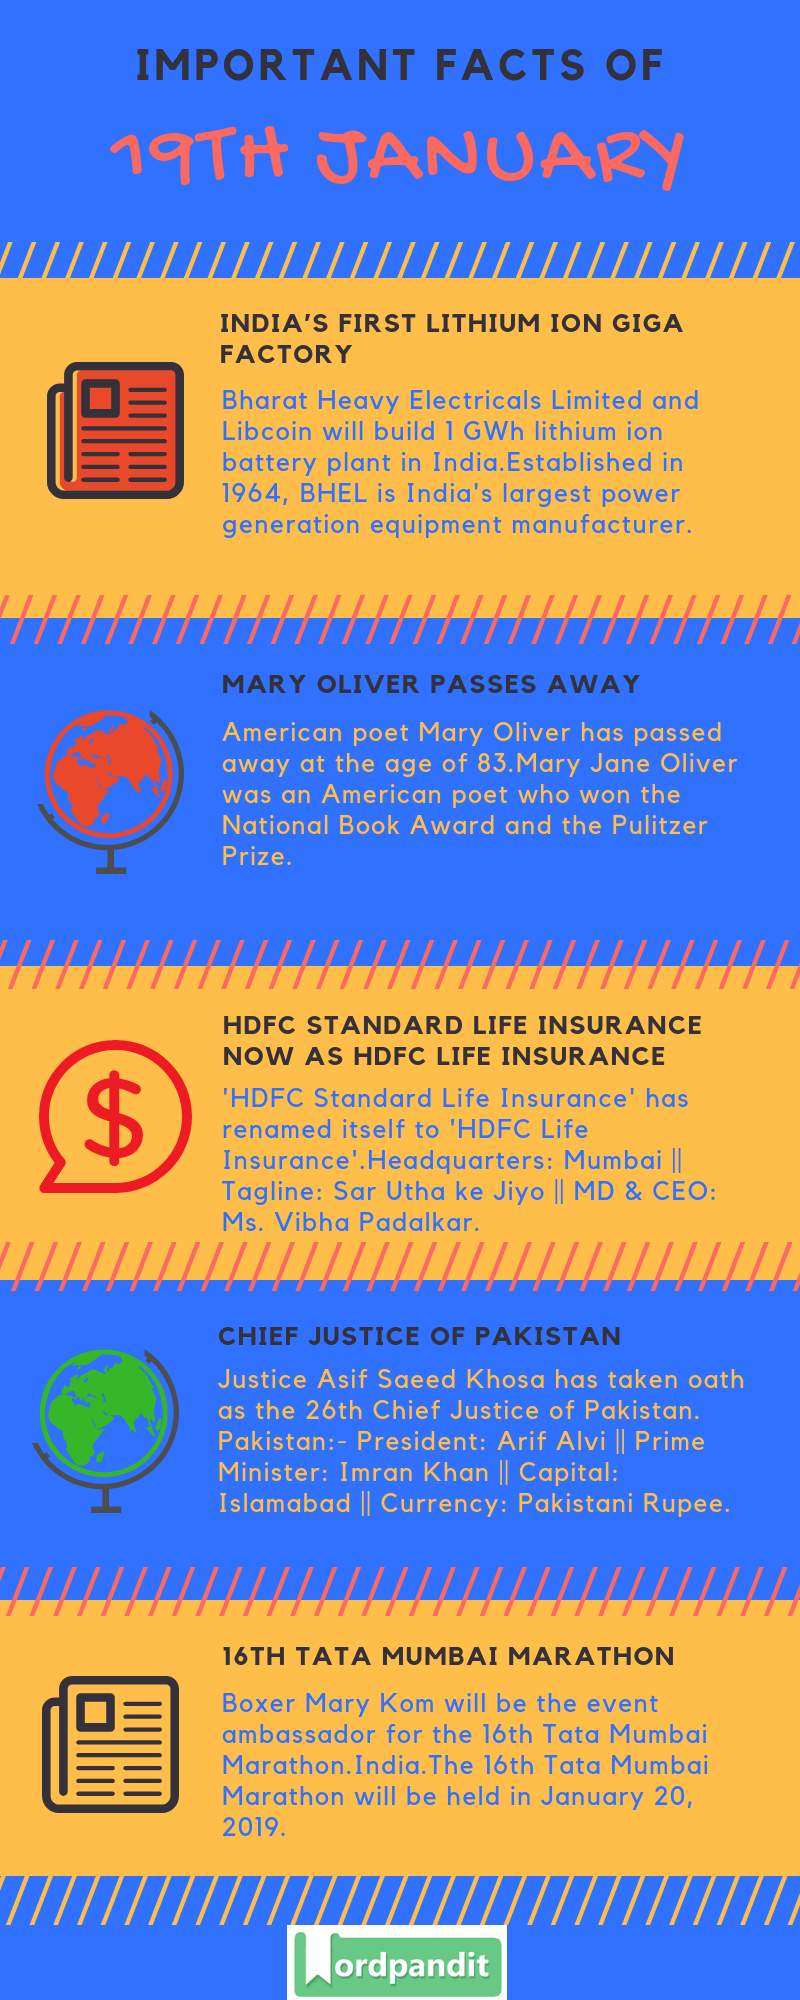 Daily Current Affairs 19 January 2019 Current Affairs Quiz 19 January 2019 Current Affairs Infographic